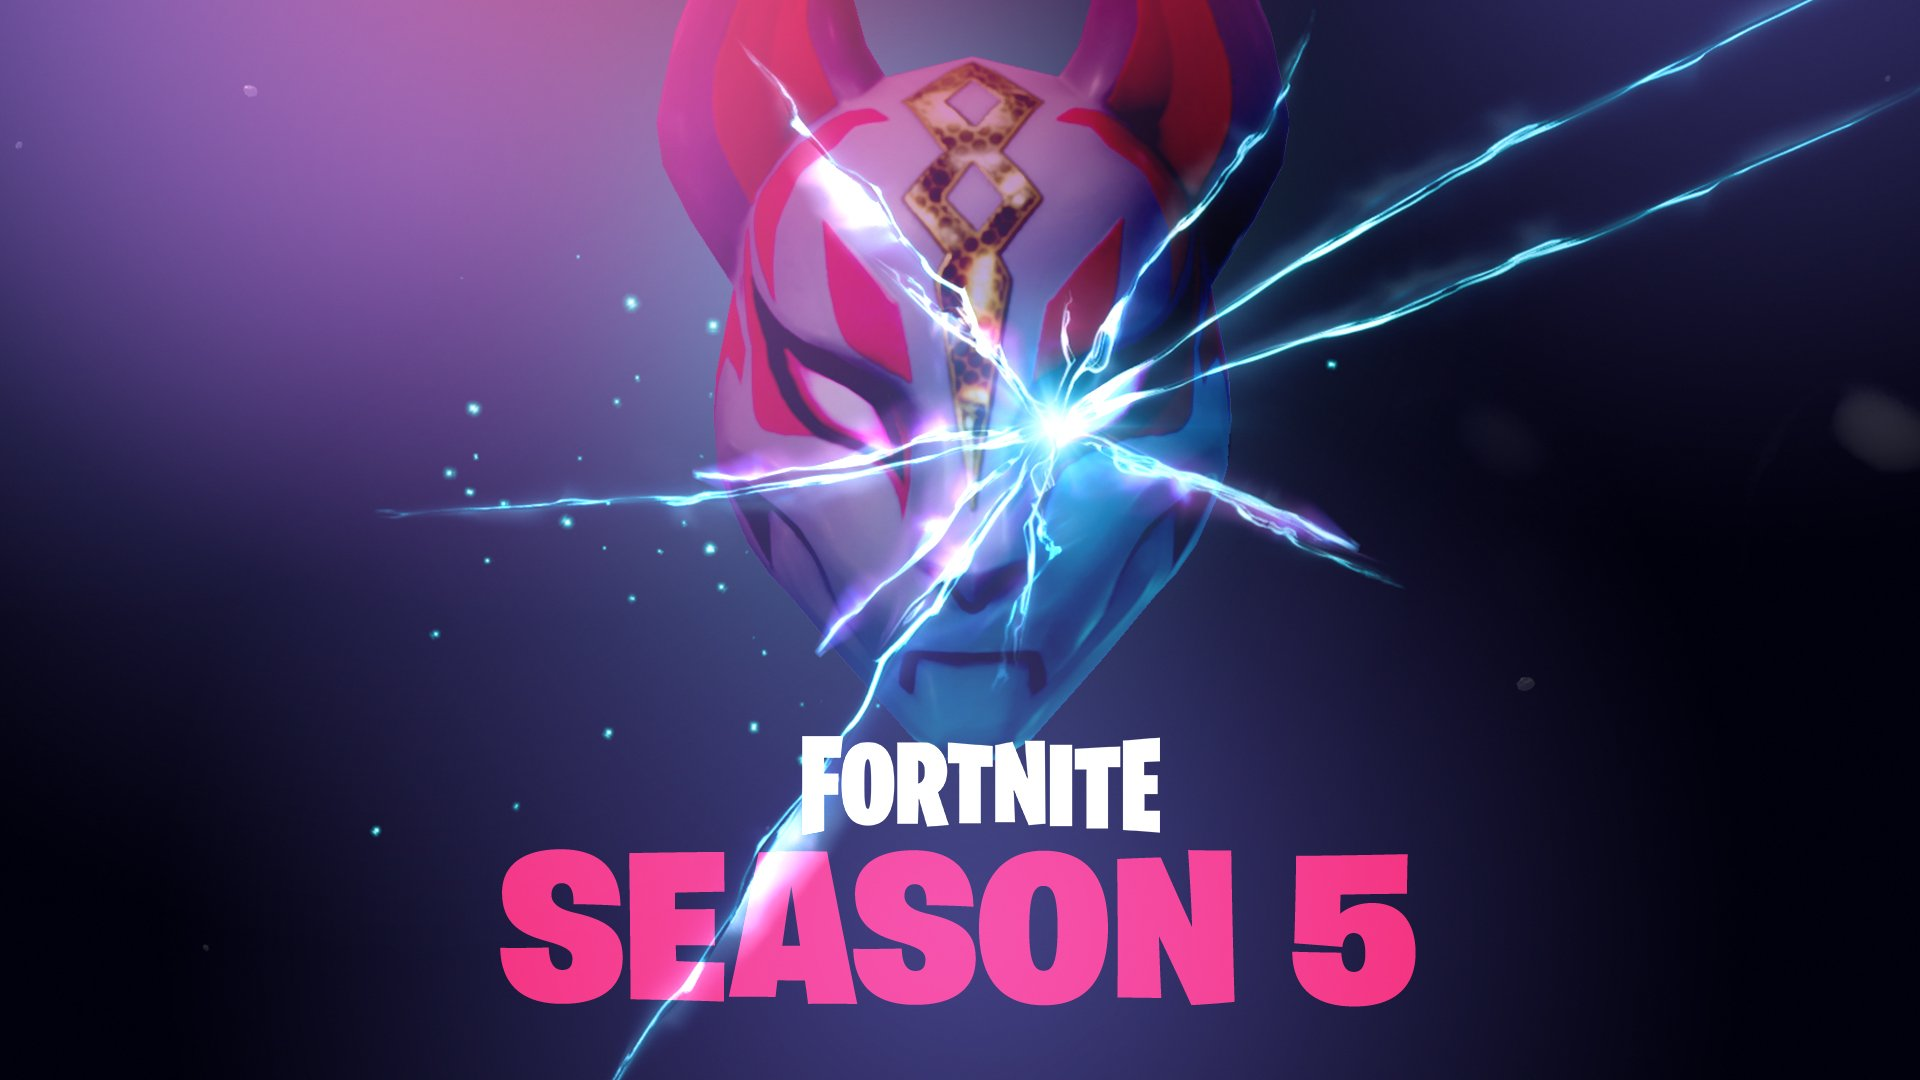 Fortnite  Season 5 Leaks  Worlds Collide Teaser  Kitsune Mask  and      Fortnite  Season 5 Leaks  Worlds Collide Teaser  Kitsune Mask  and Llamas    Inverse